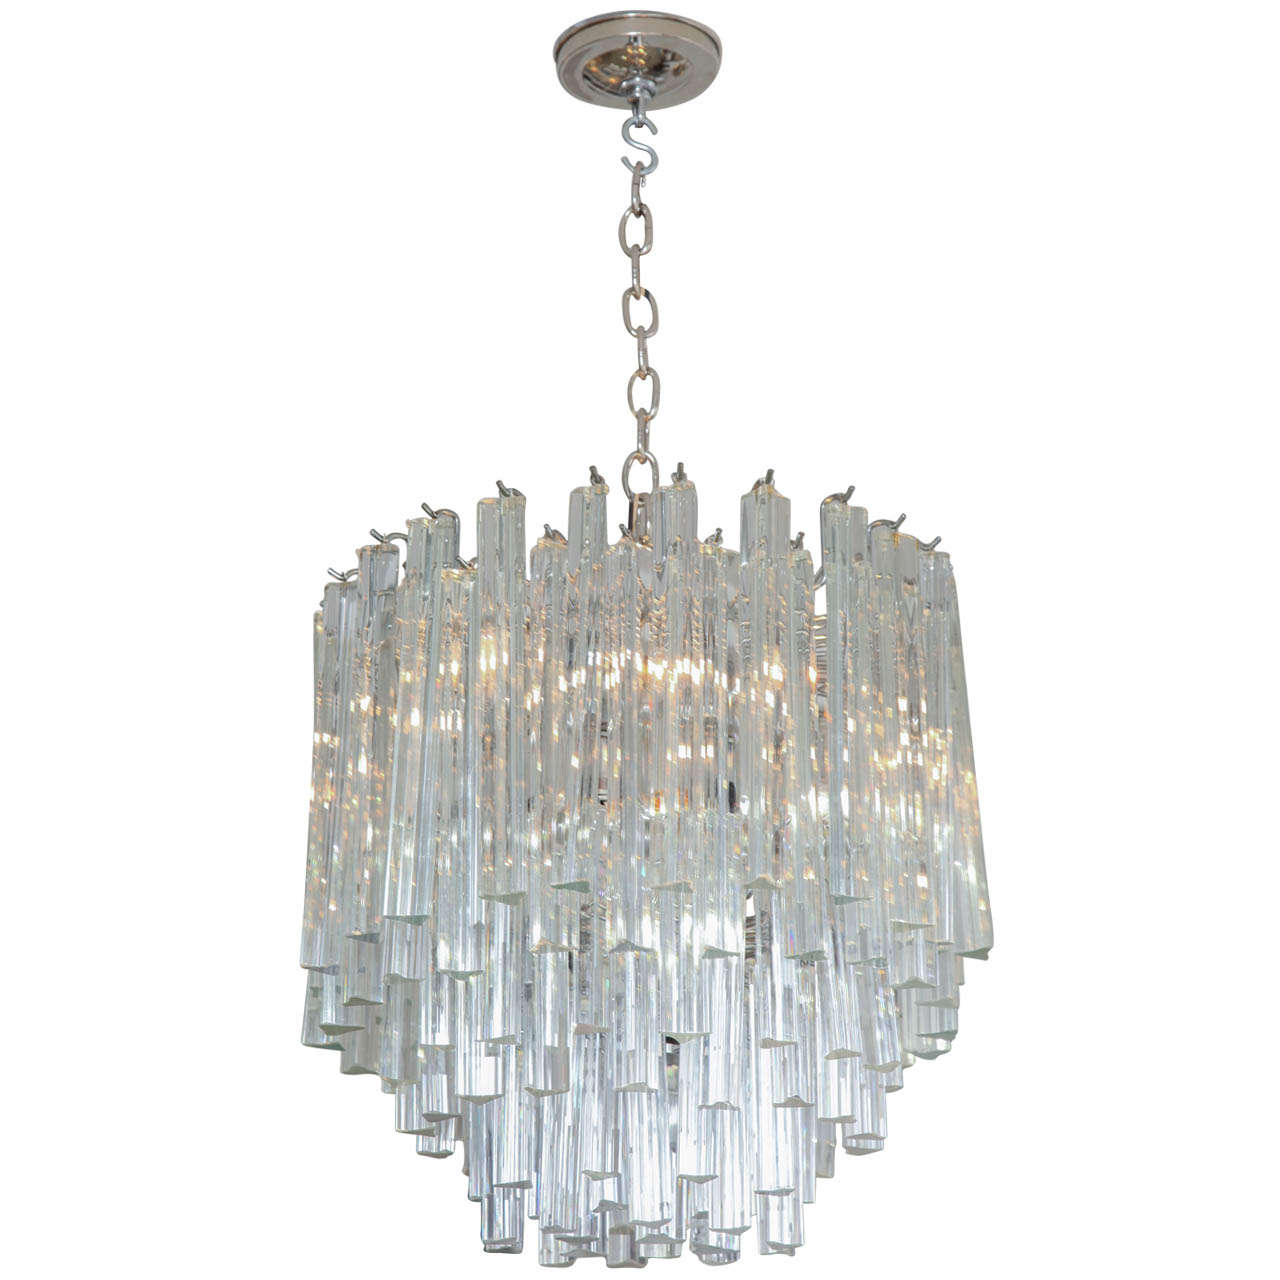 Six tier venini chandelier for sale at 1stdibs six tier venini chandelier for sale arubaitofo Gallery